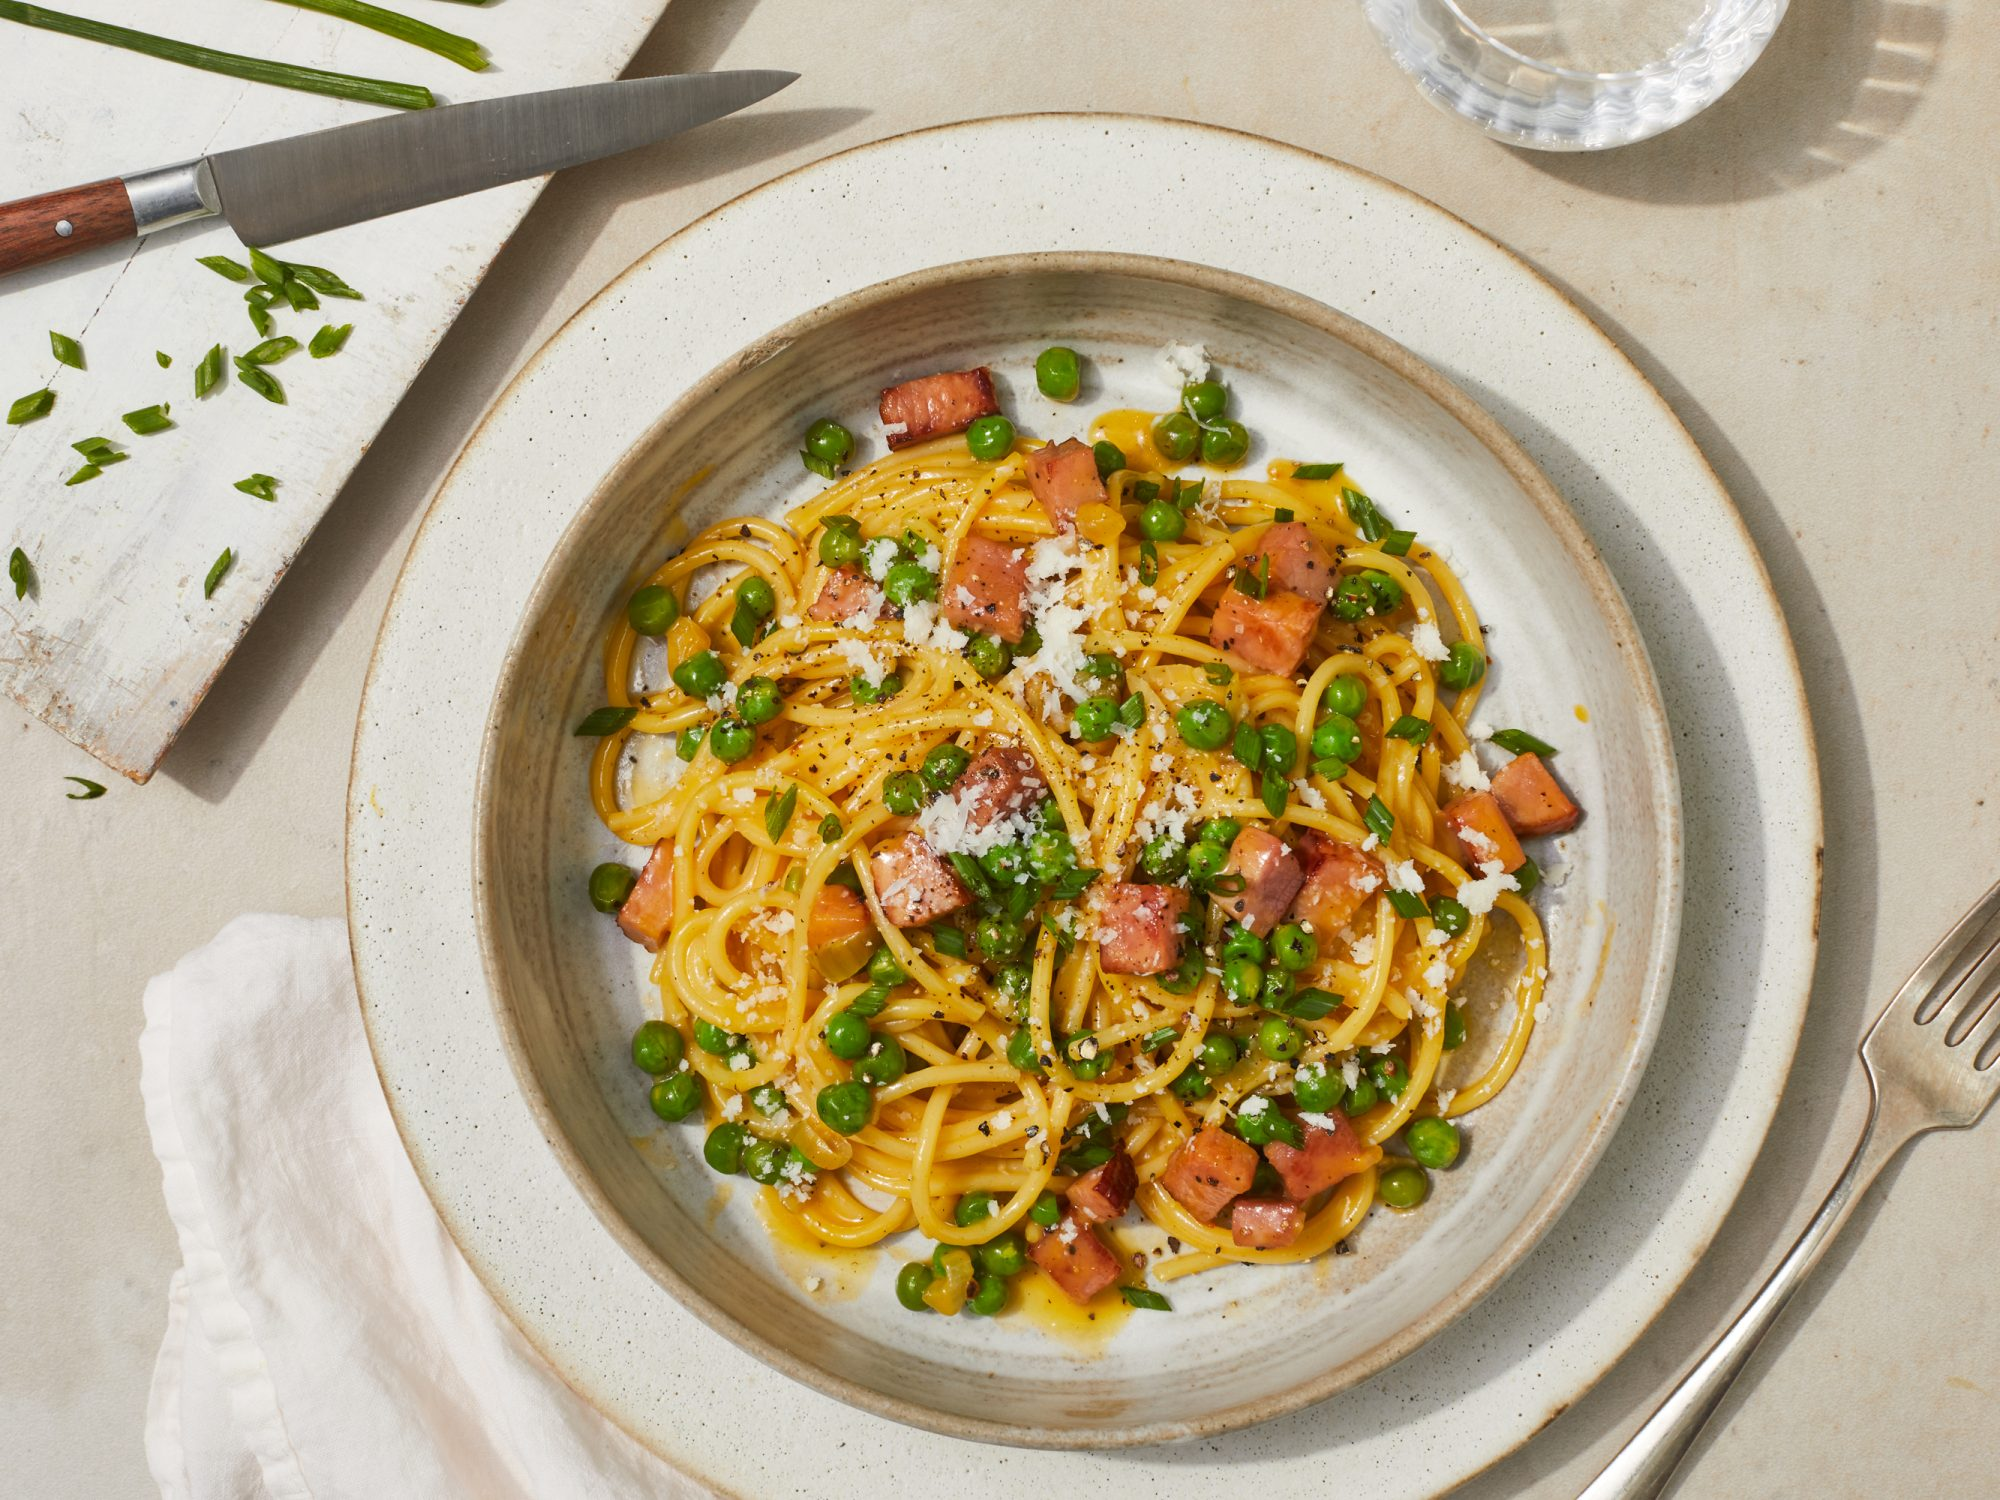 Creamy Spaghetti Carbonara with Peas and Ham